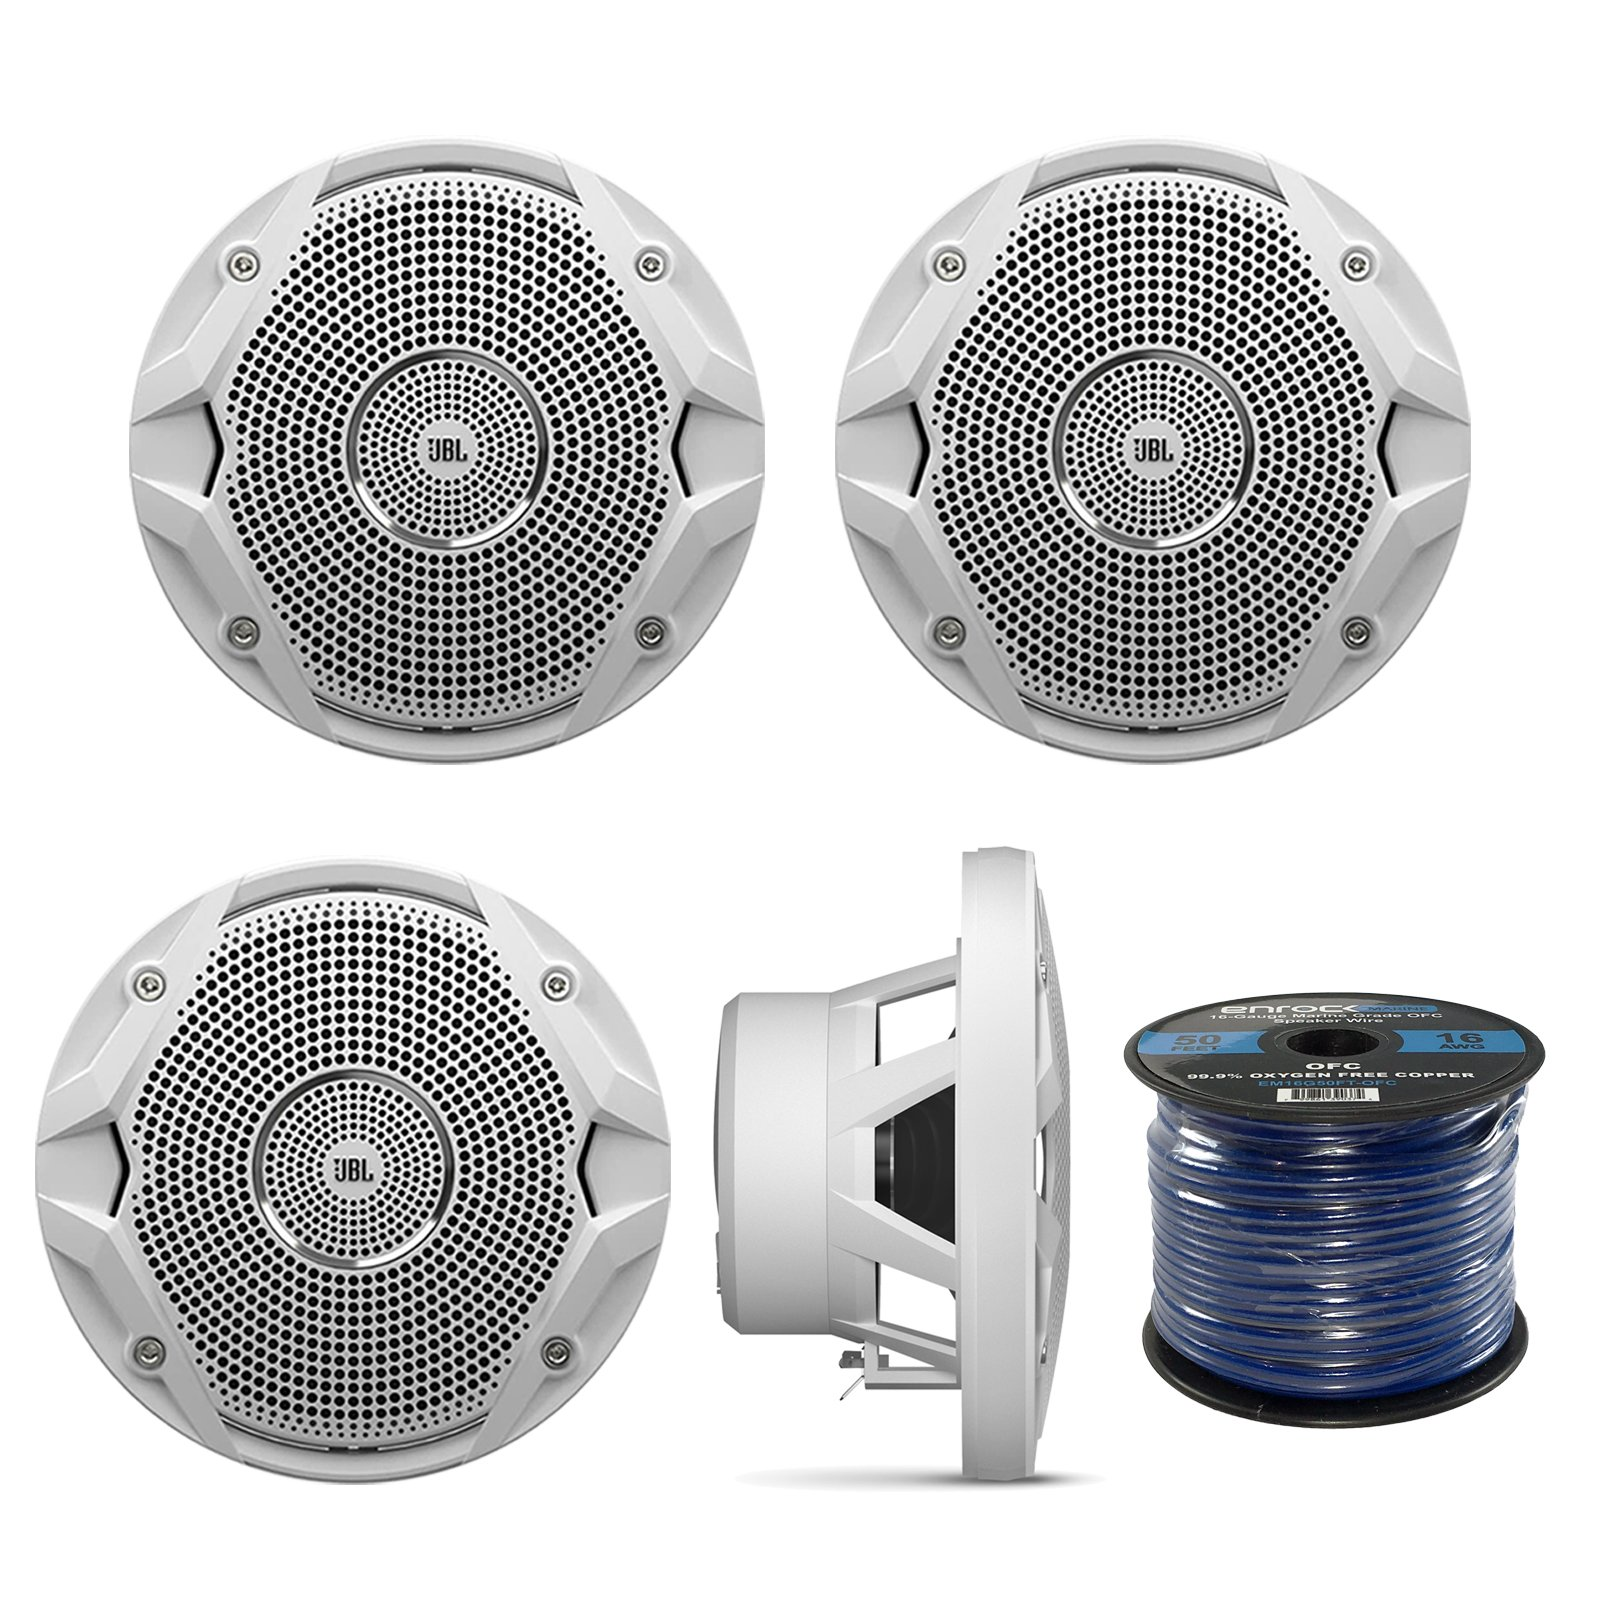 "JBL 4 X New MS6510 6.5"" 150 Watts Marine Boat Yacht Outdoor Waterproof Stereo Audio Speakers System with 50 Ft. Marine Speaker Wire Bundle - Great Marine Speakers Kit (4)"